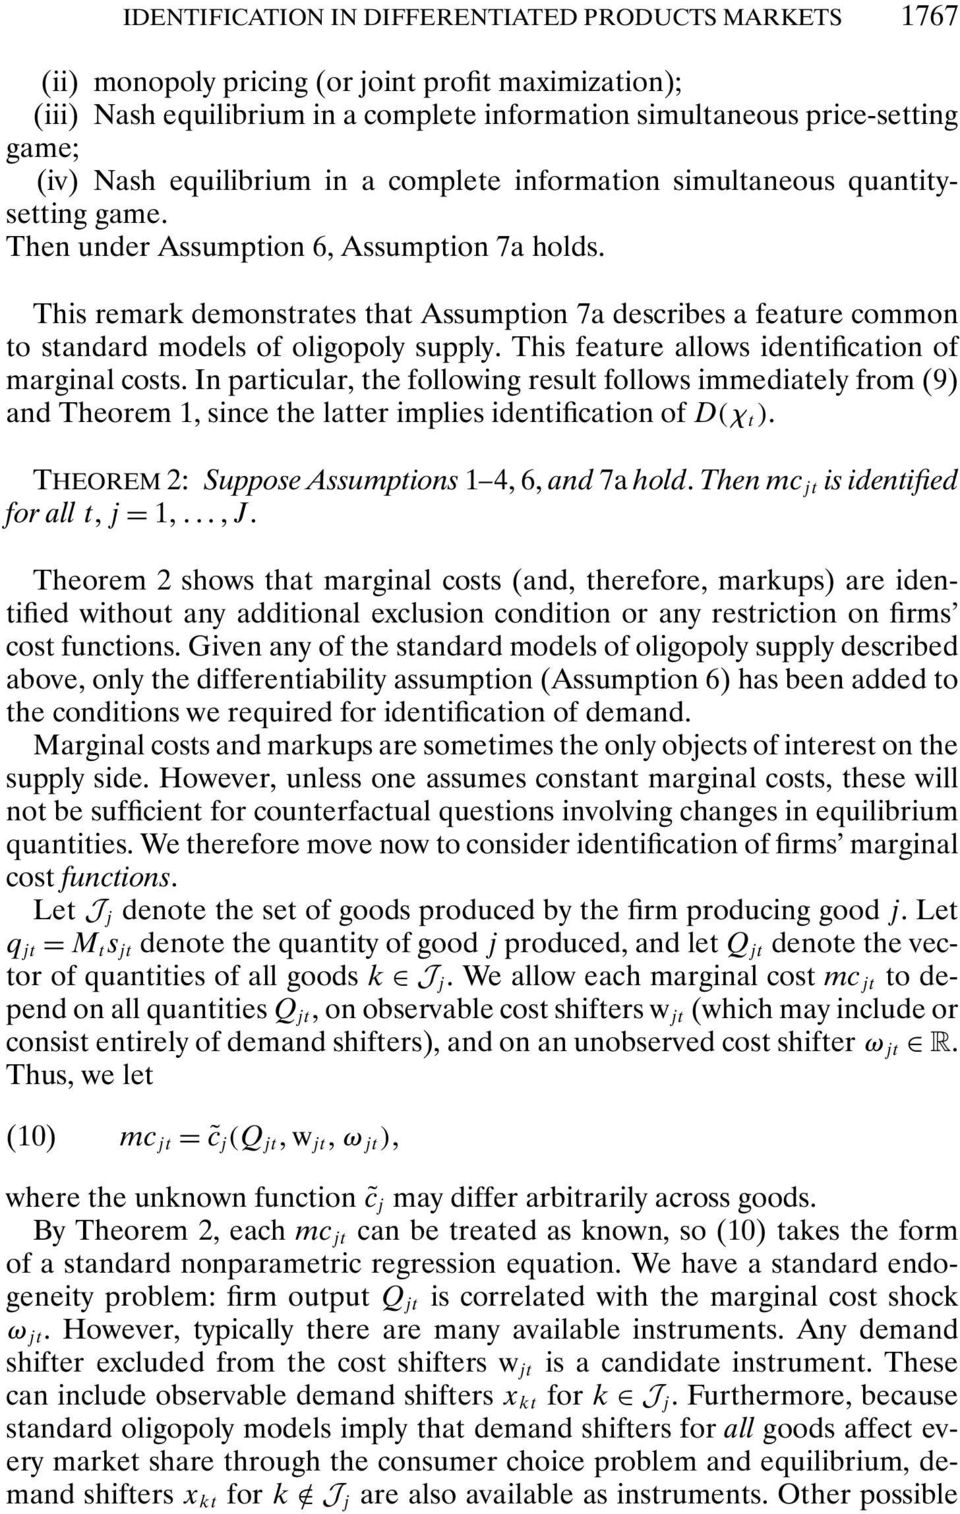 This remark demonstrates that Assumption 7a describes a feature common to standard models of oligopoly supply. This feature allows identification of marginal costs.